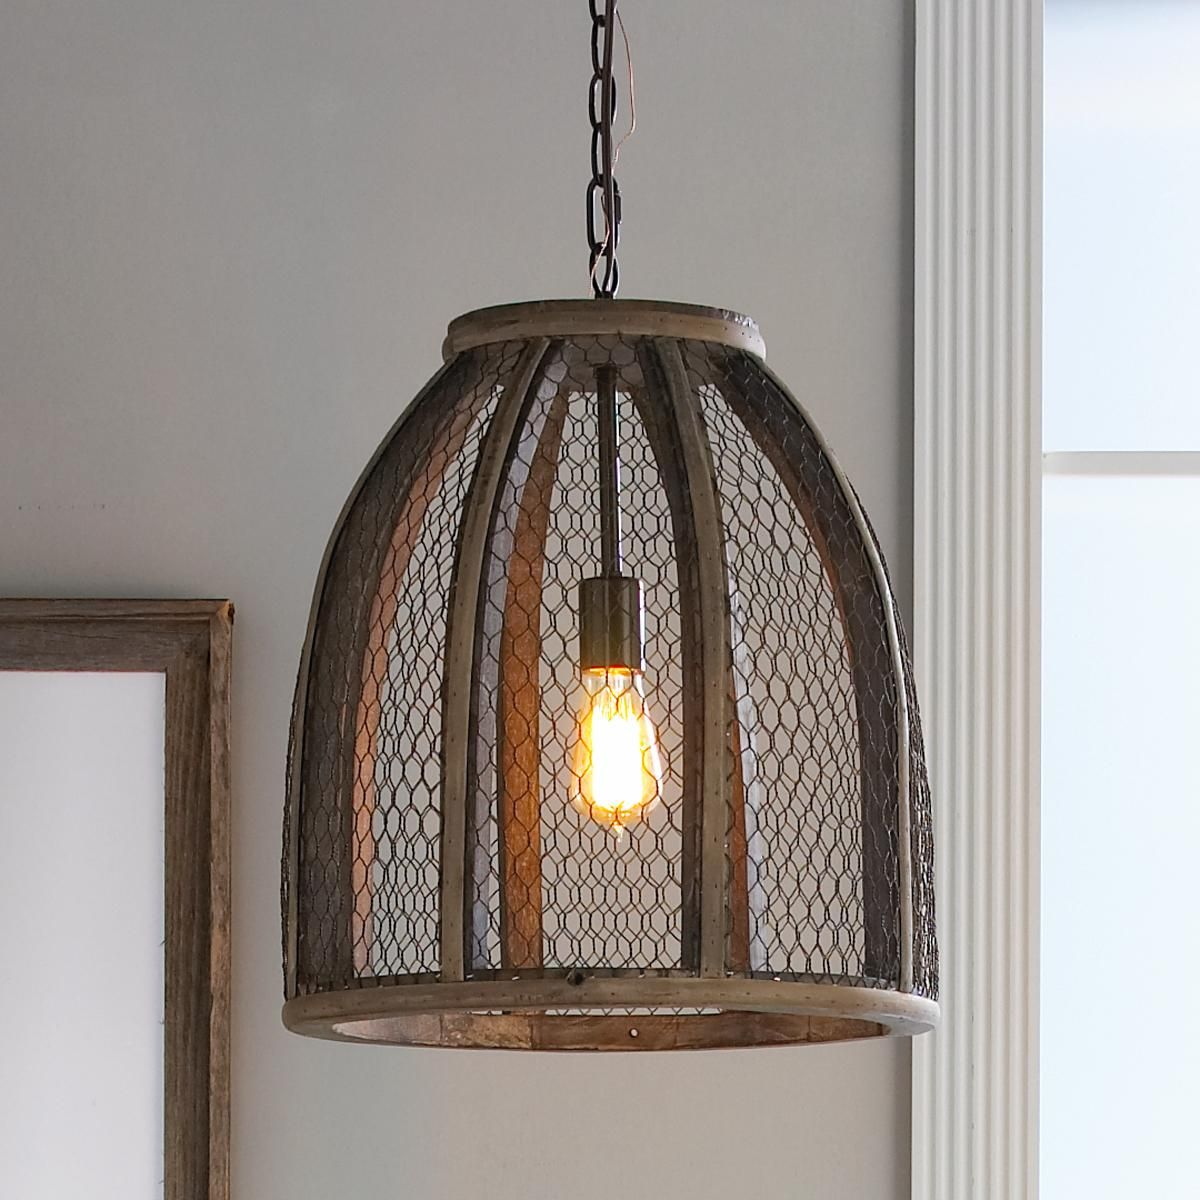 Chicken Wire Pendant Light Large Wire Pendant Light Industrial Light Fixtures Light Fixtures